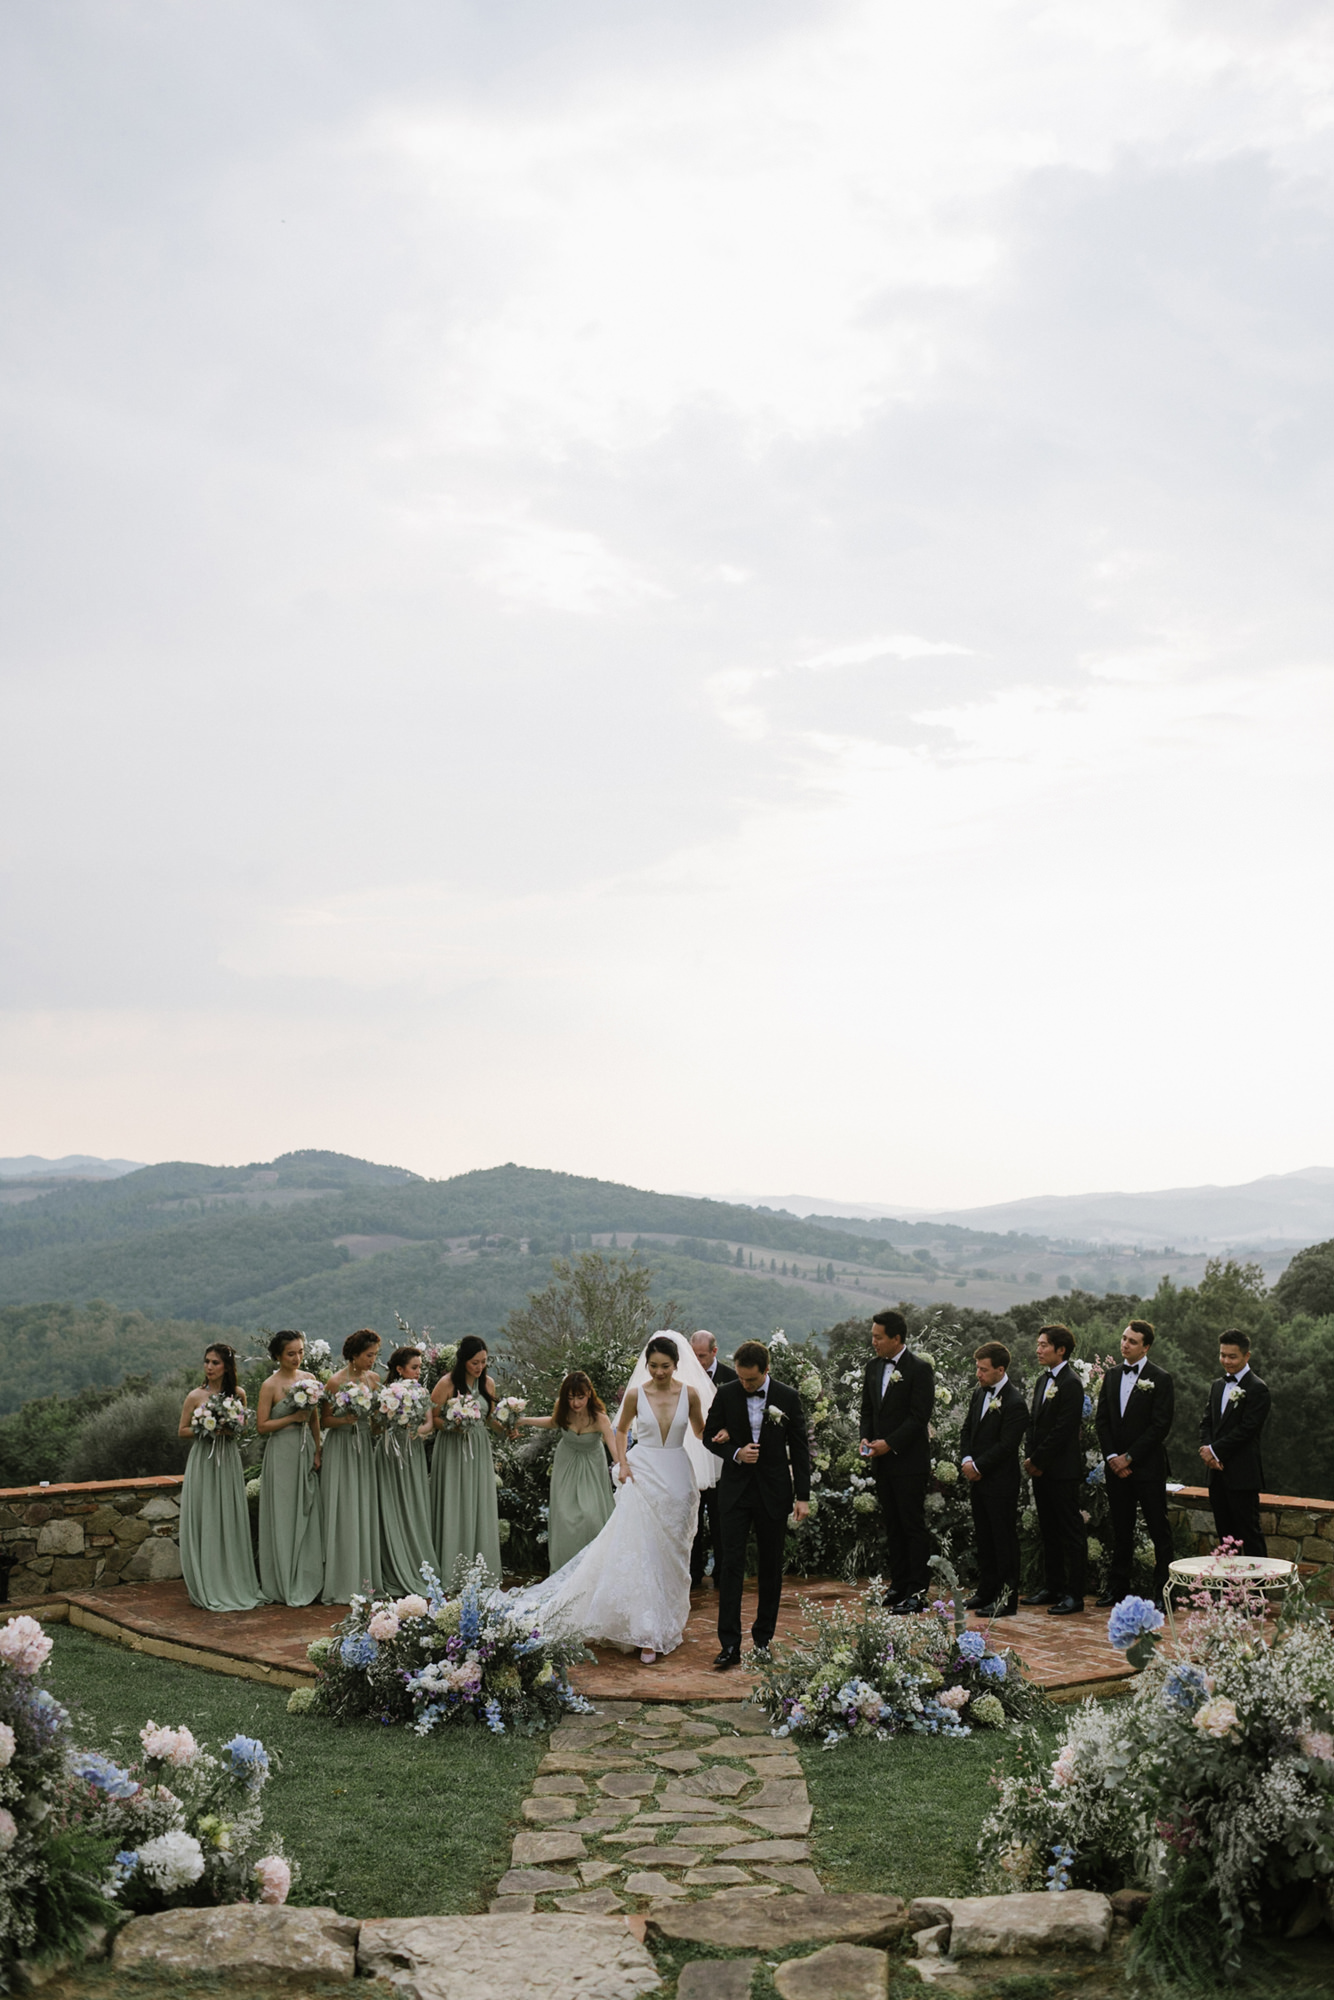 Beautiful overview shot of bride and groom exiting ceremony with French countryside by Thierry Joubert